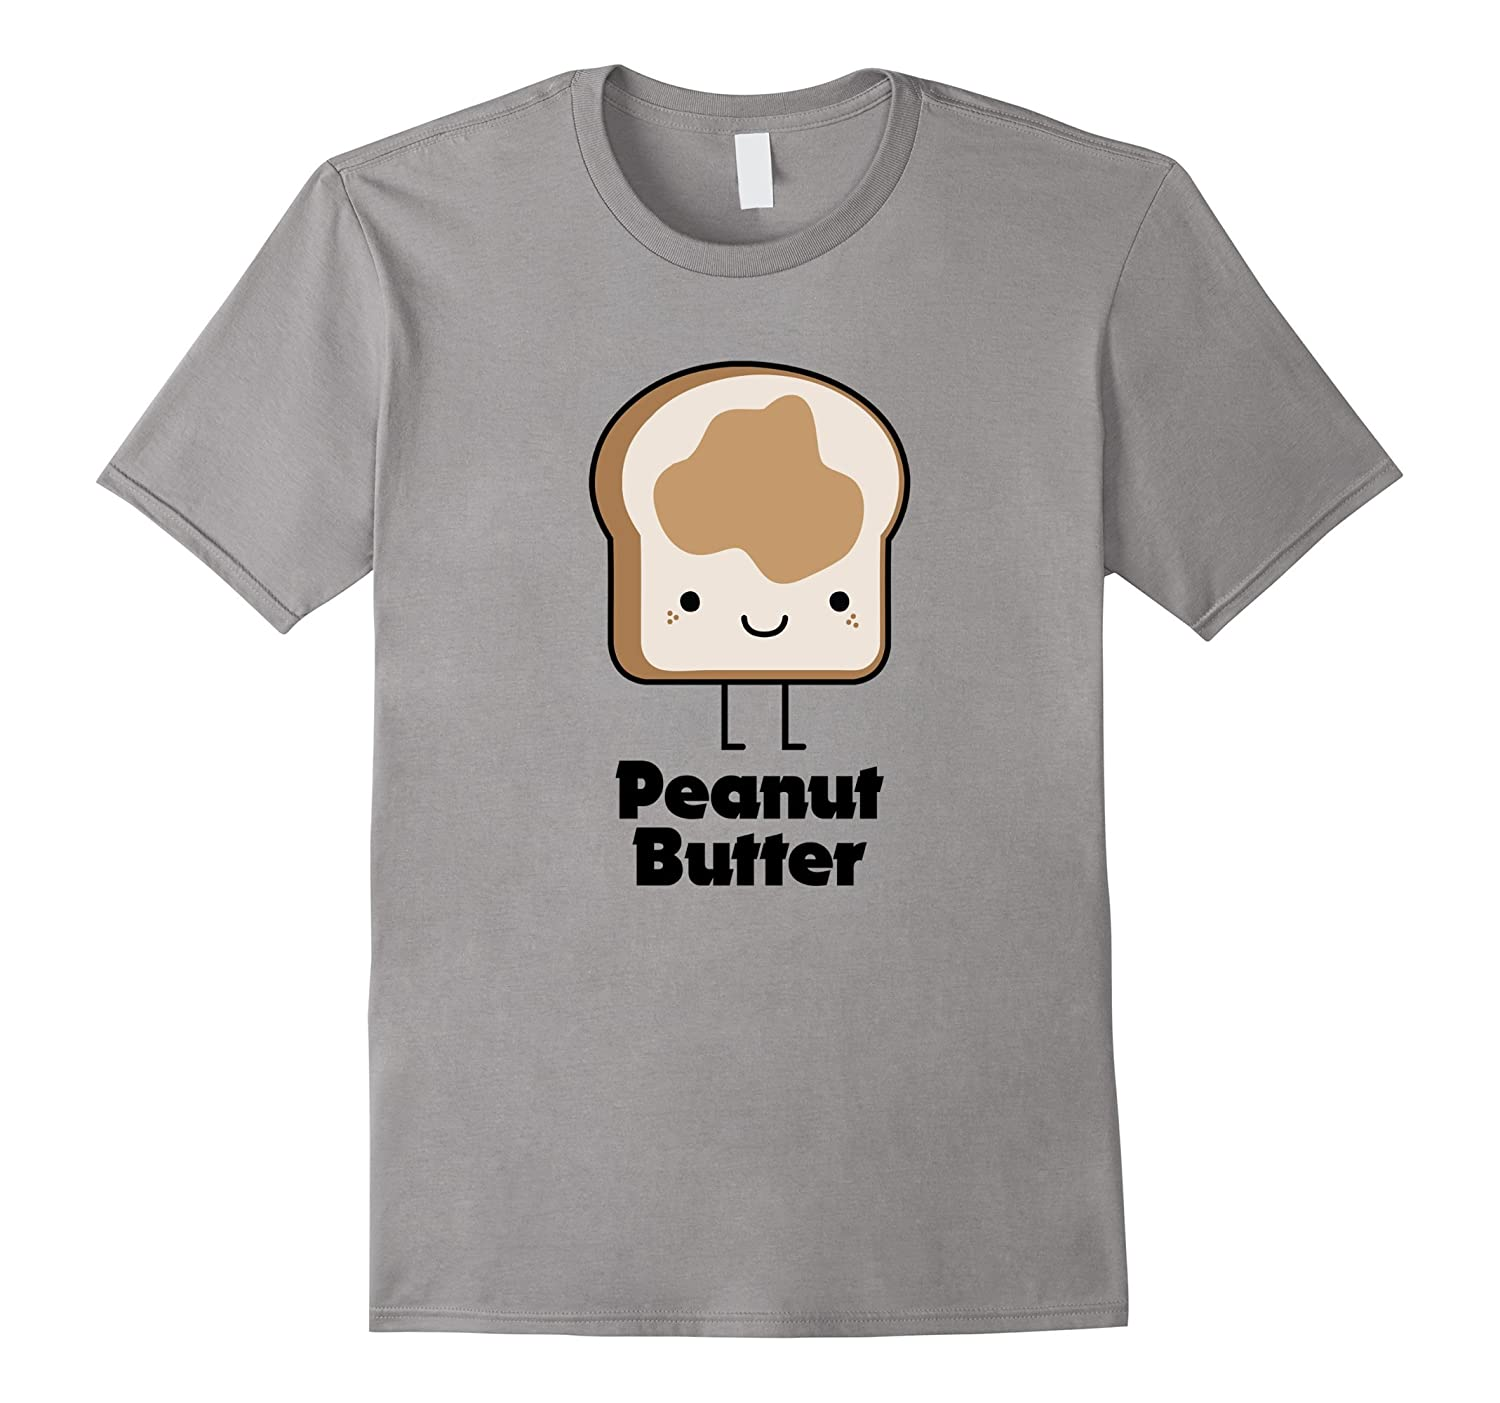 MATCHING SET Peanut Butter and Jelly Couples Friend Shirt-Art